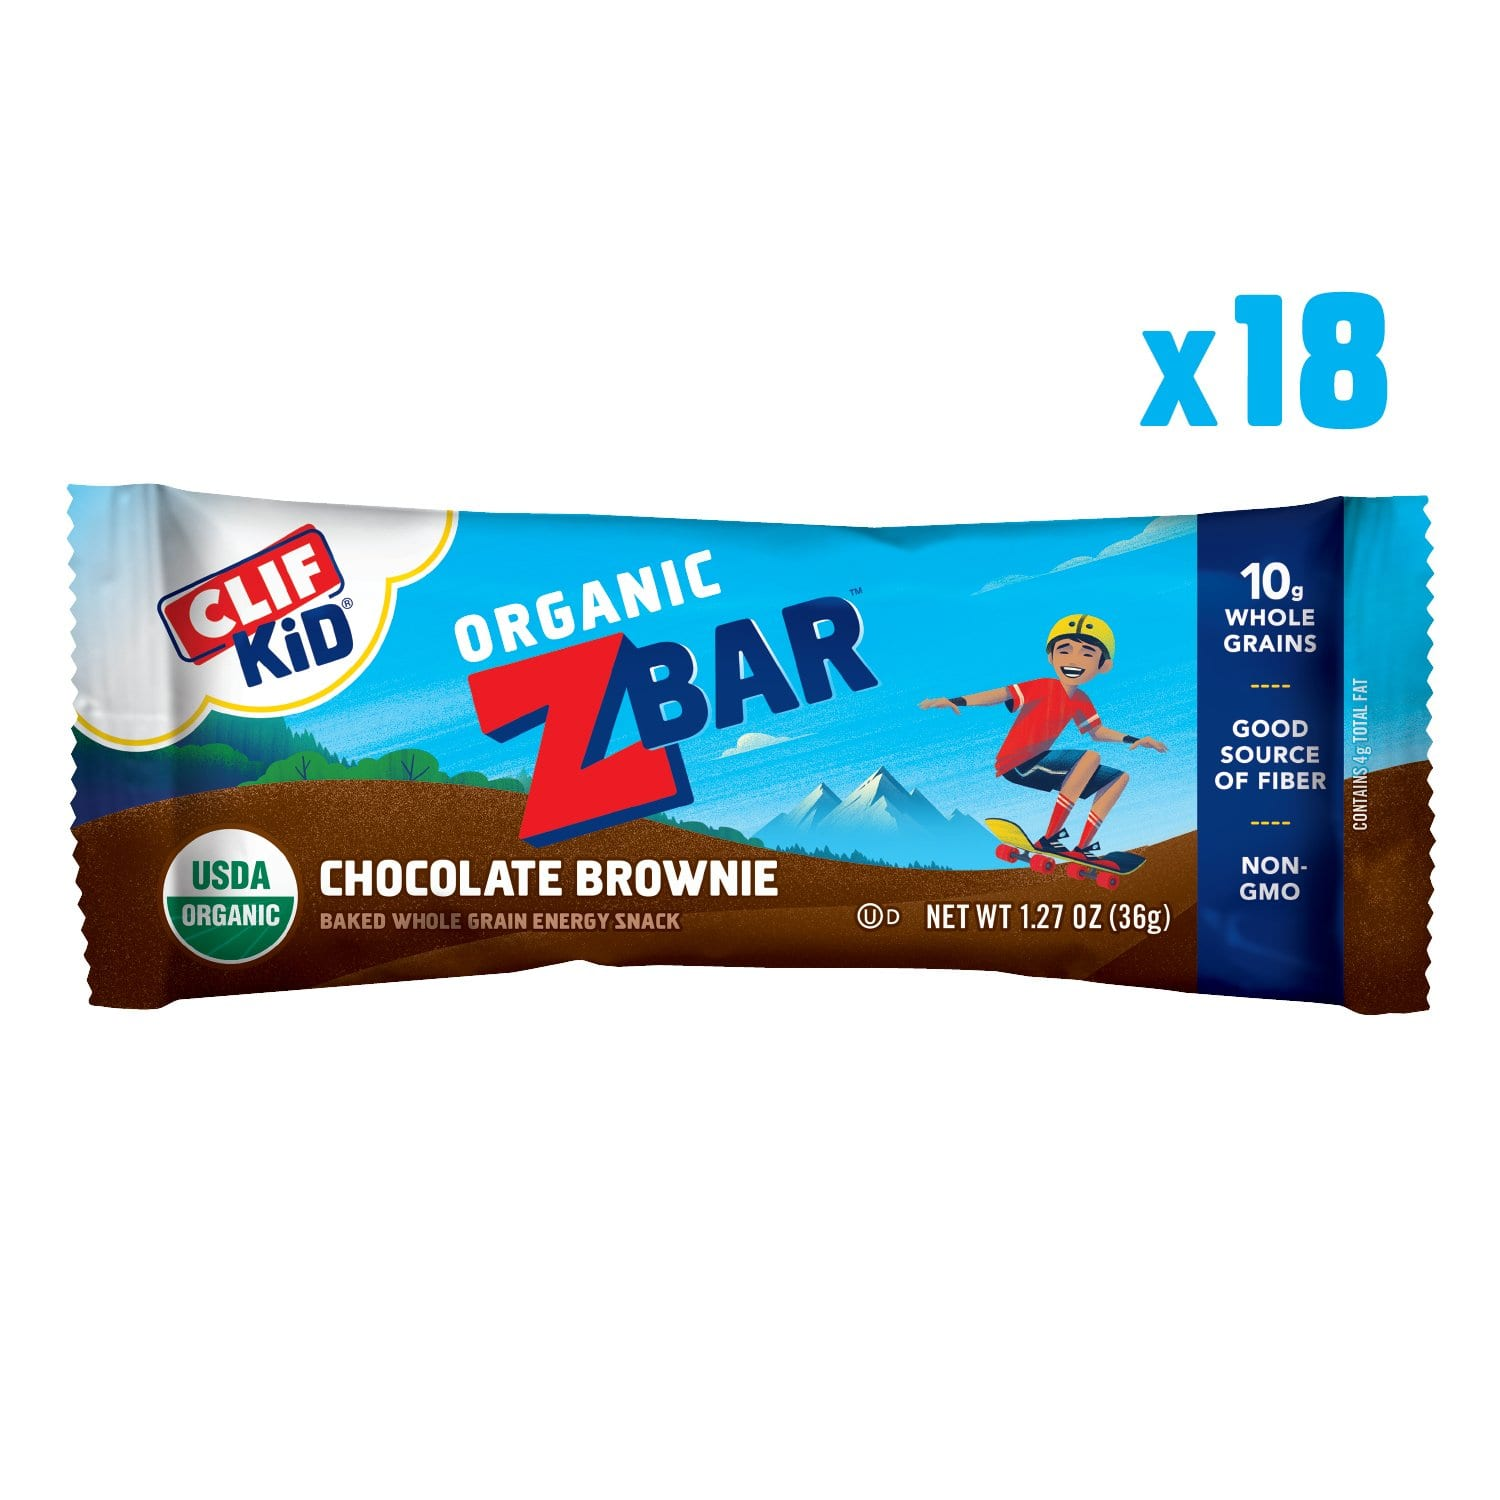 CLIF KID ZBAR - Organic Energy Bar - Chocolate Chip - (1.27 Ounce Snack Bar, 18 Count) - $8.54 @amazon with S & S as Add-on item